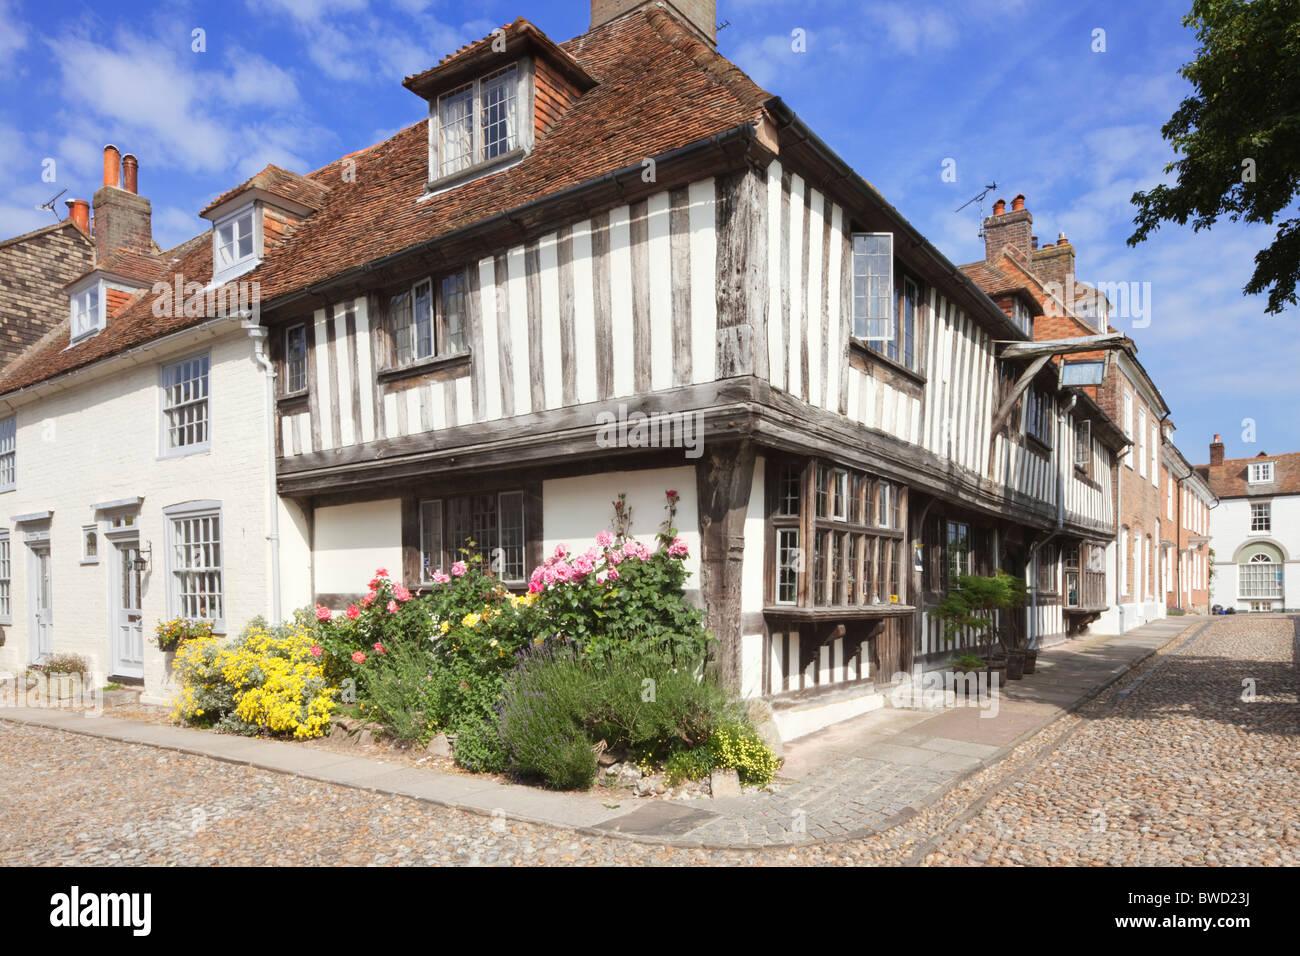 Watchbell Street; Rye; East Sussex; England, Great Britain - Stock Image